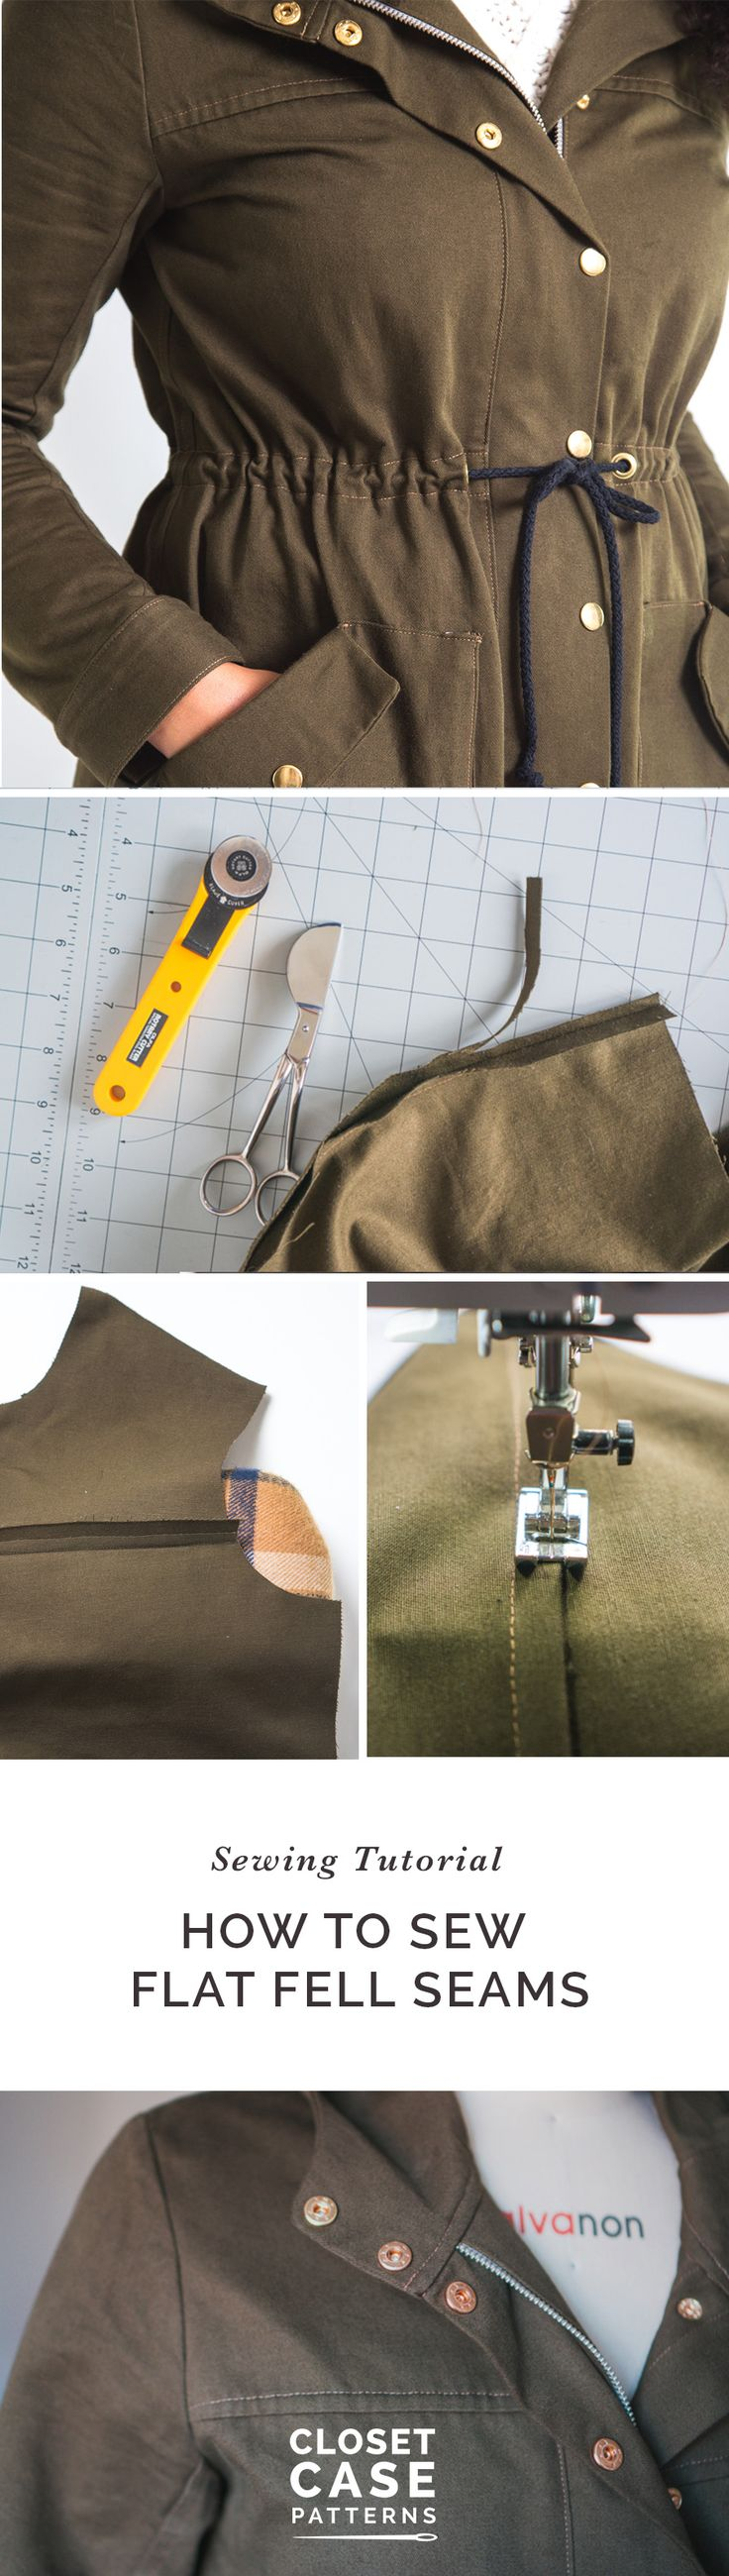 How to sew flat felled seams // Sewing tutorial // Closet Case Patterns https://closetcasepatterns.com/sewalong/sew-flat-felled-seams-kelly-anorak-sewalong/